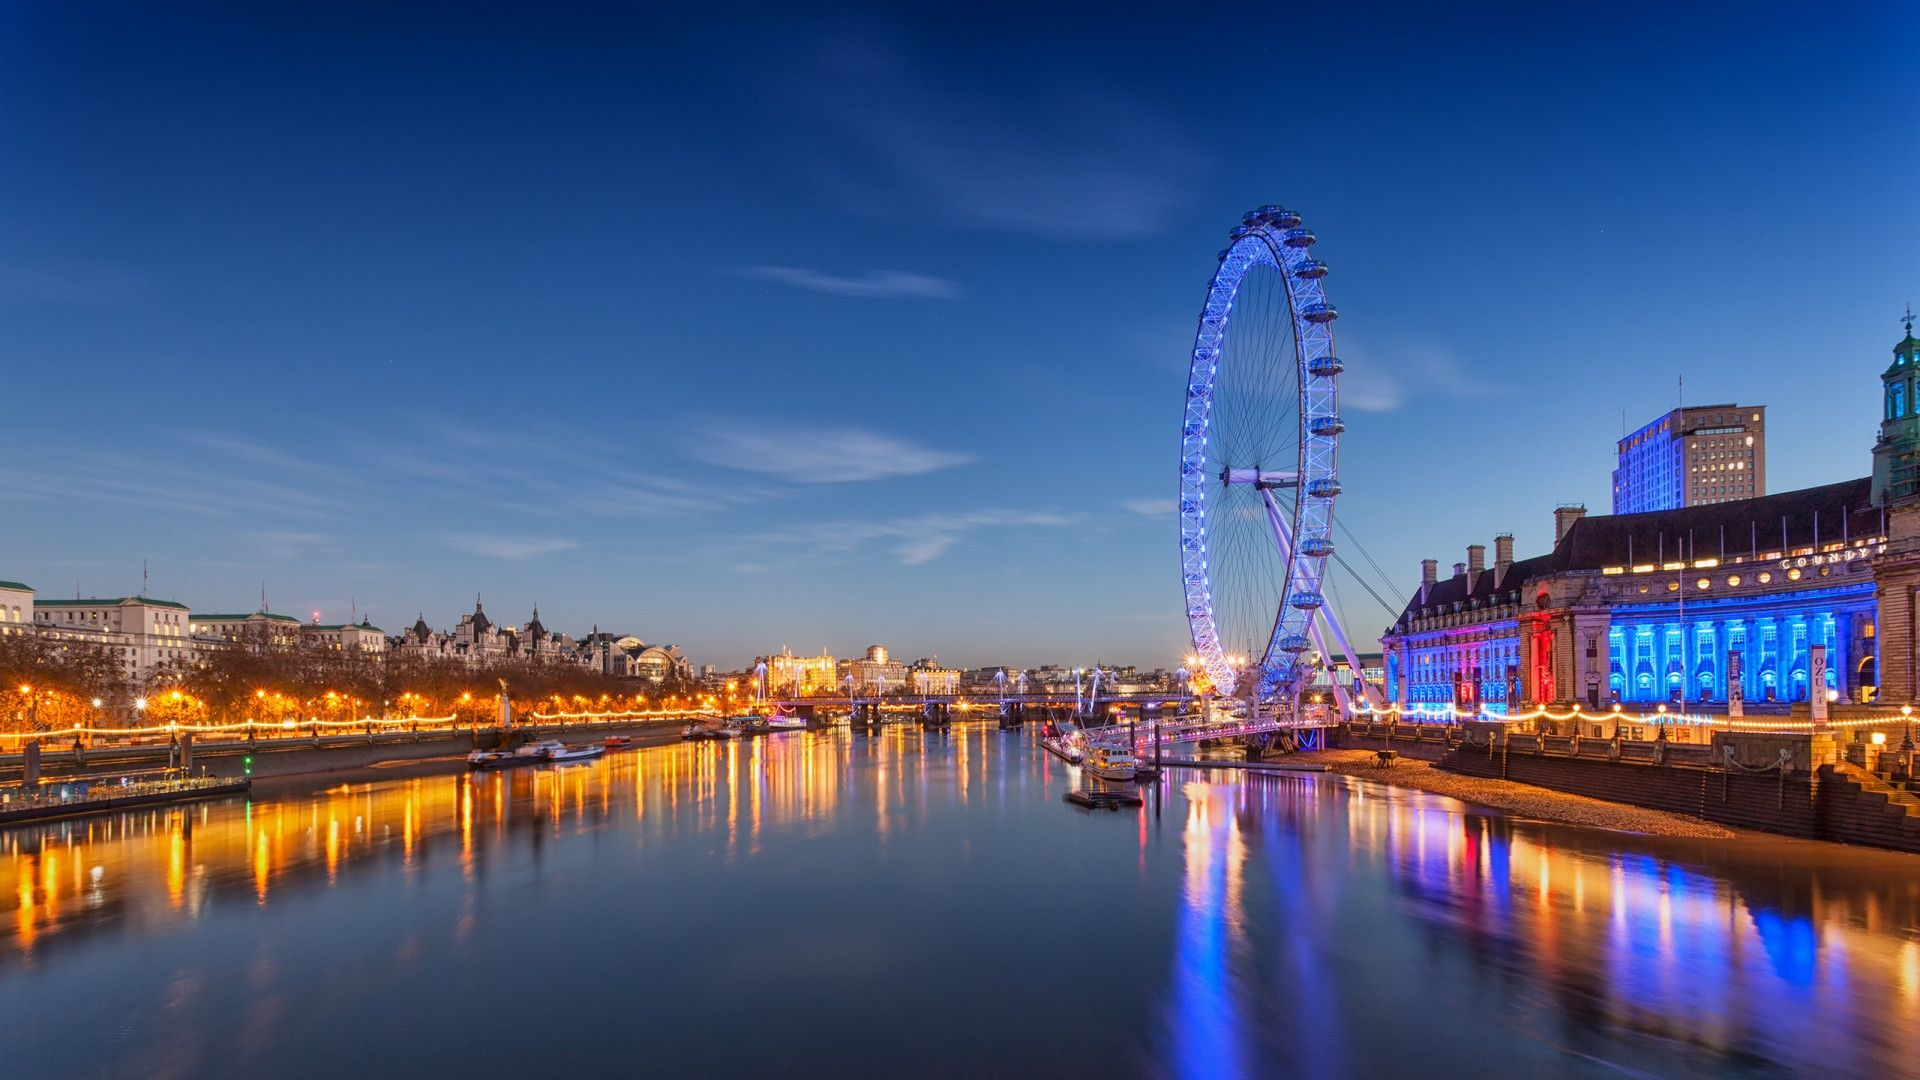 Beautiful Wallpaper High Resolution London - fdfd6be8043fc55be311461f5be3d944  Pic_60989.jpg